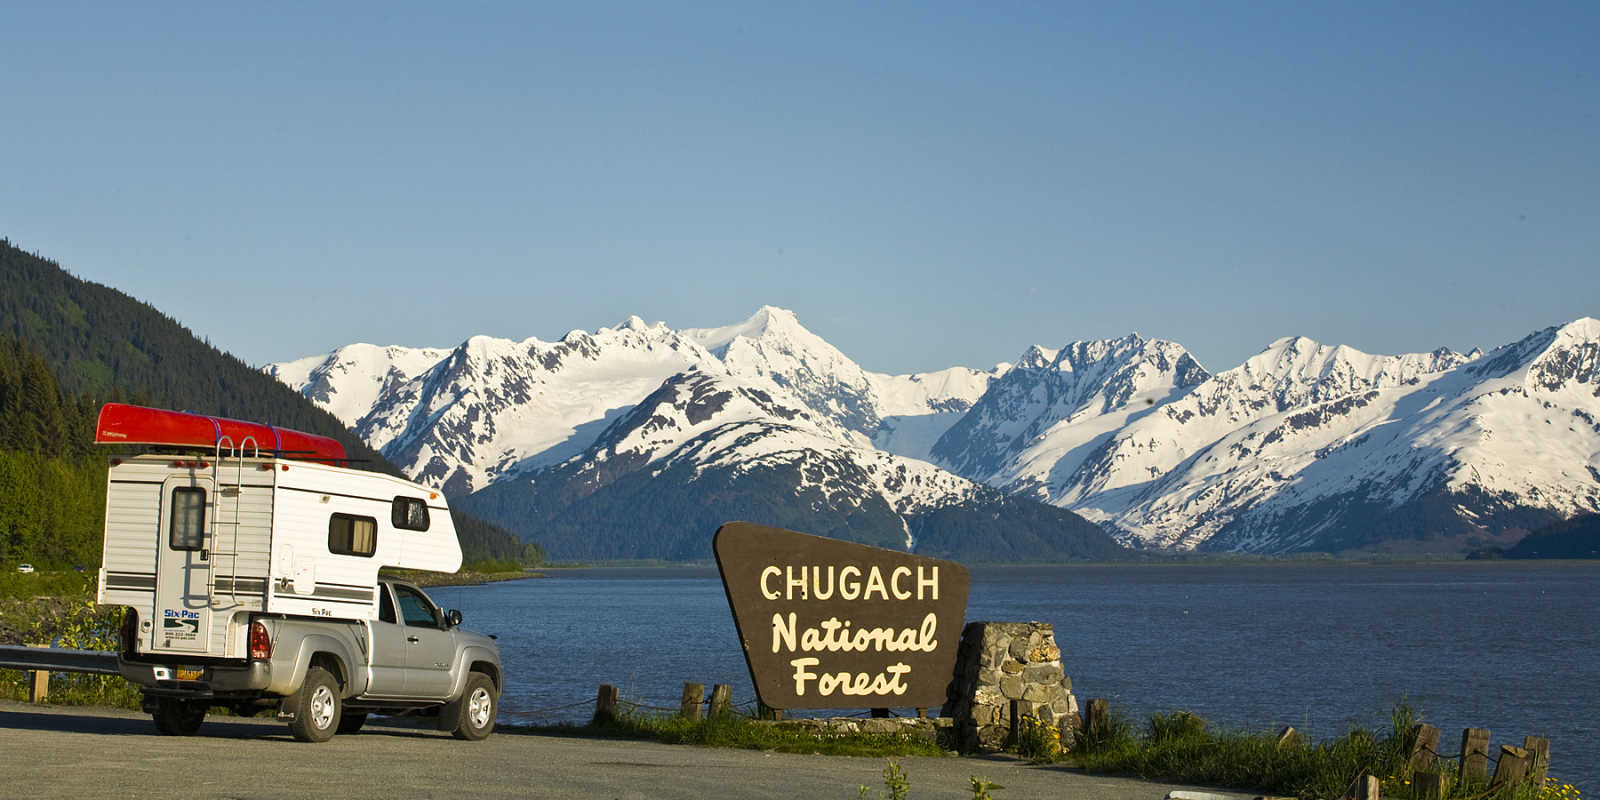 RV trip through Chugach National Forest